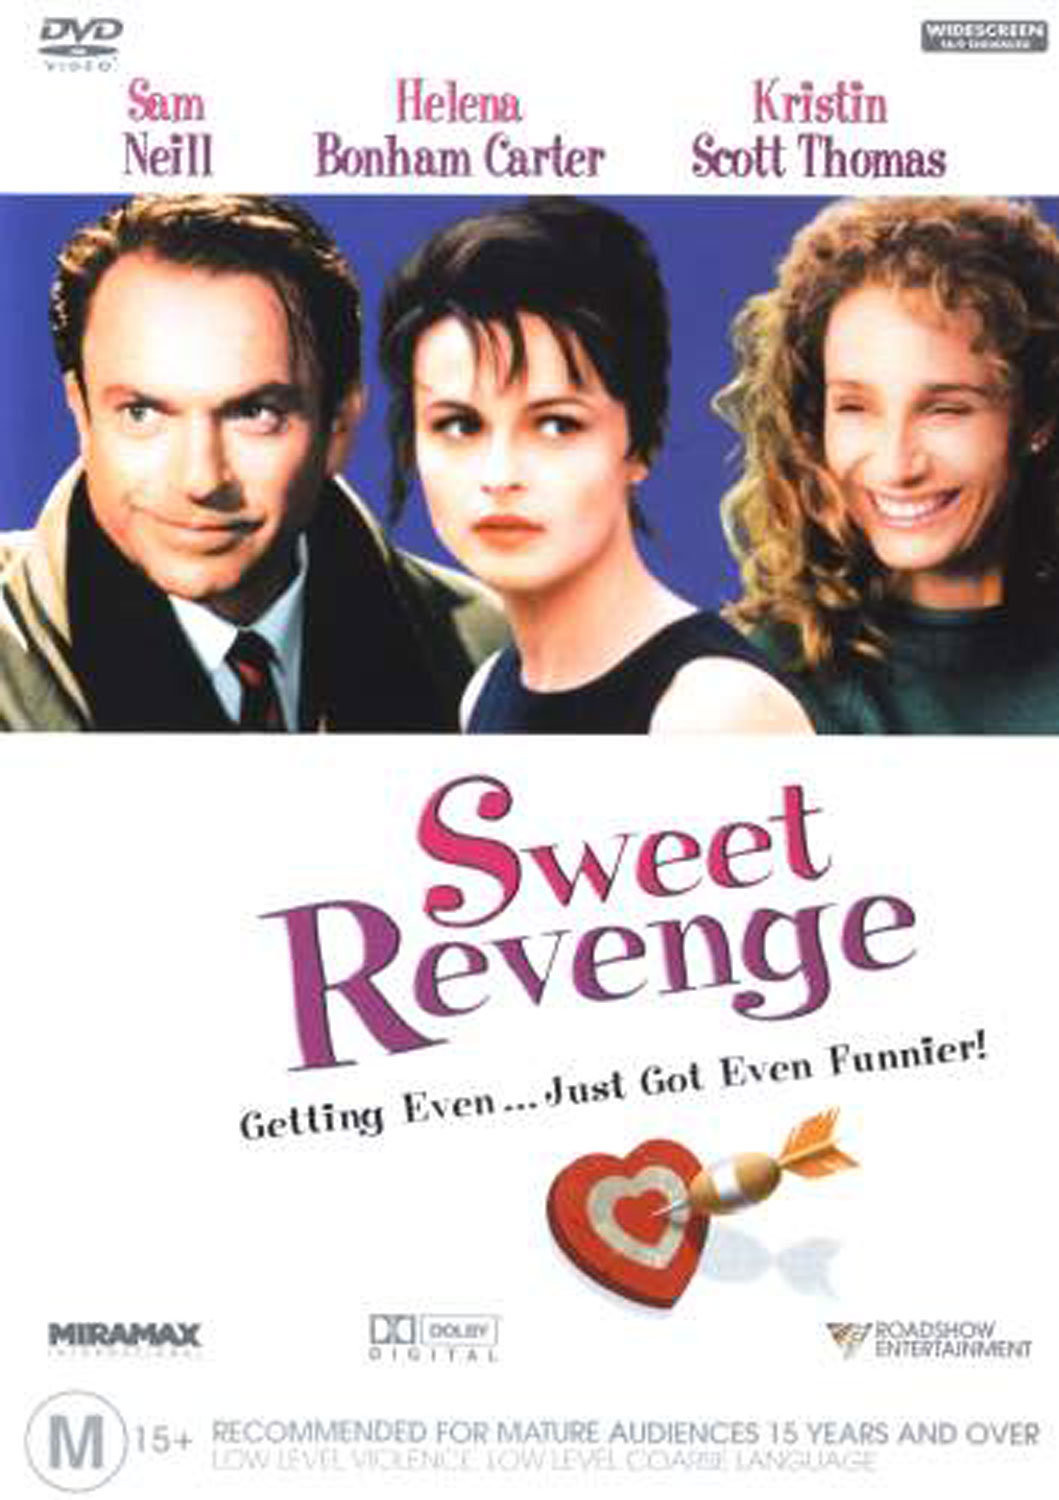 Sweet revenge movie